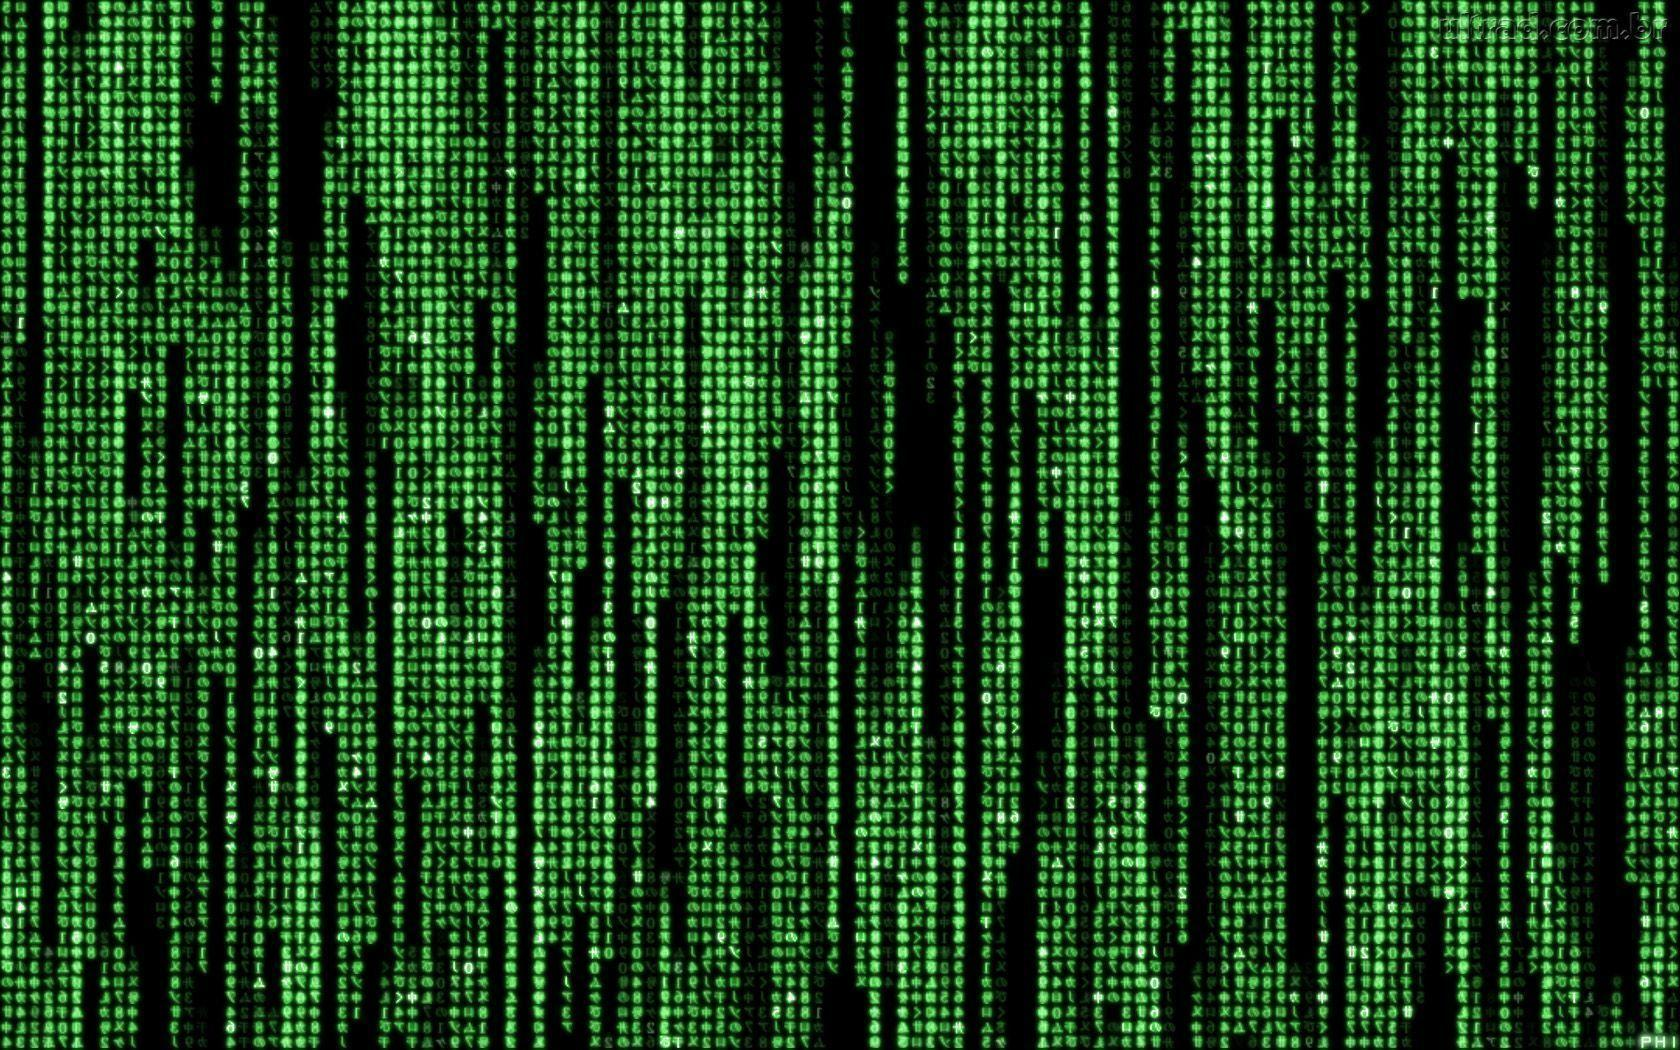 Matrix Backgrounds - Wallpaper Cave Heartbreak Images For Facebook